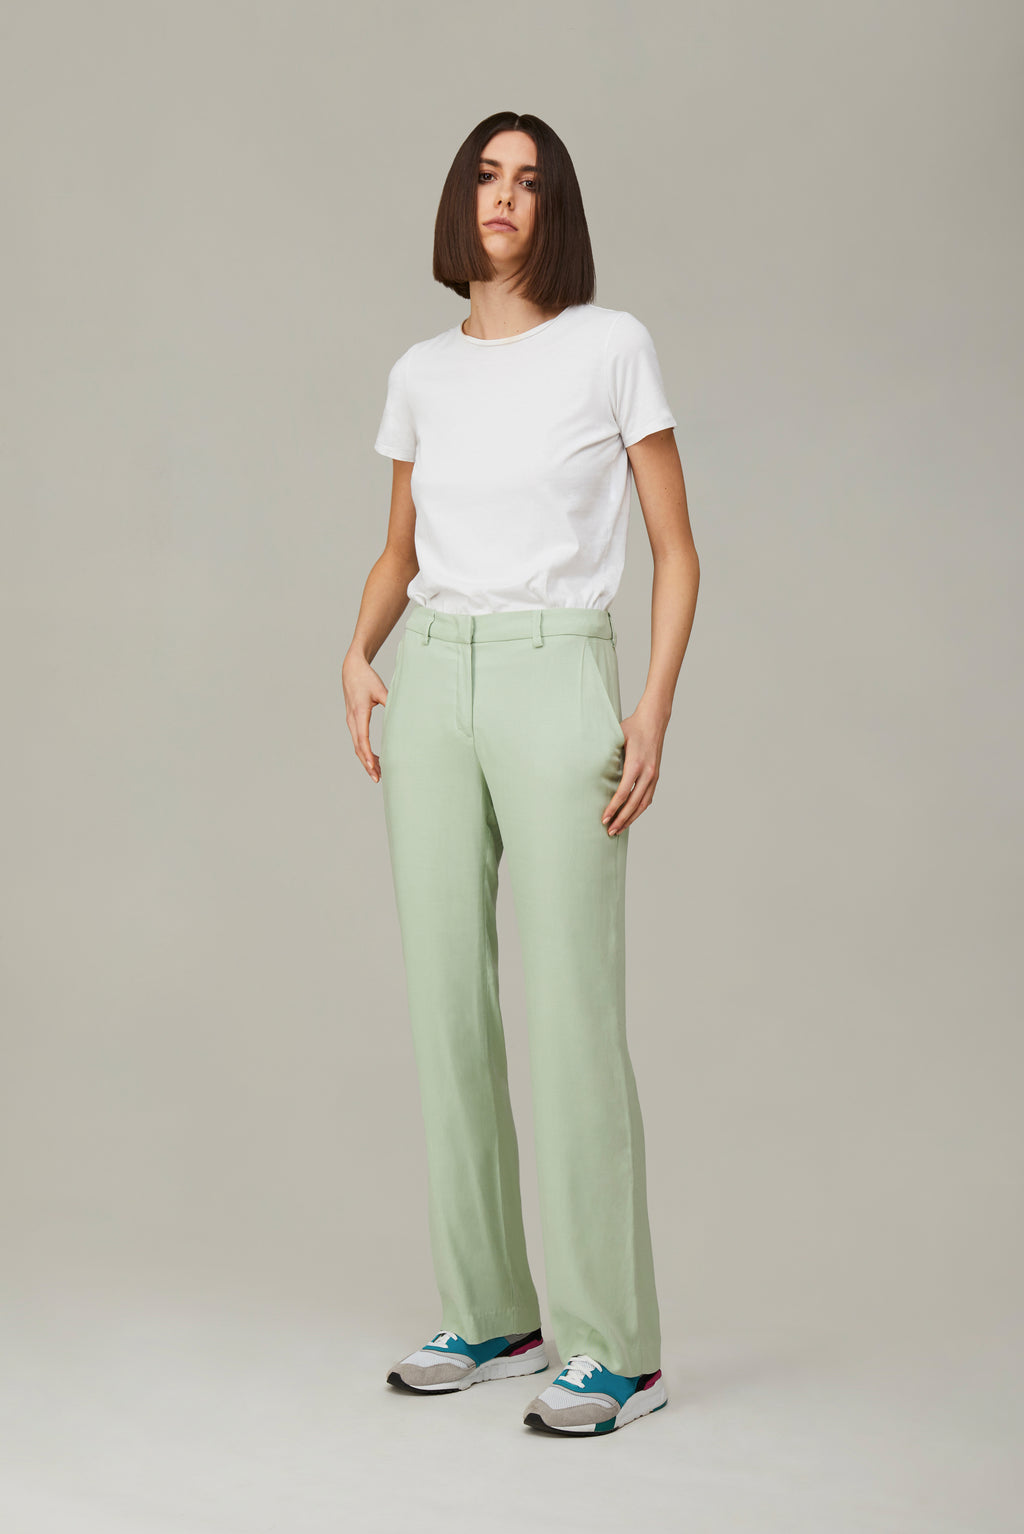 The Mint Green Lover Pants